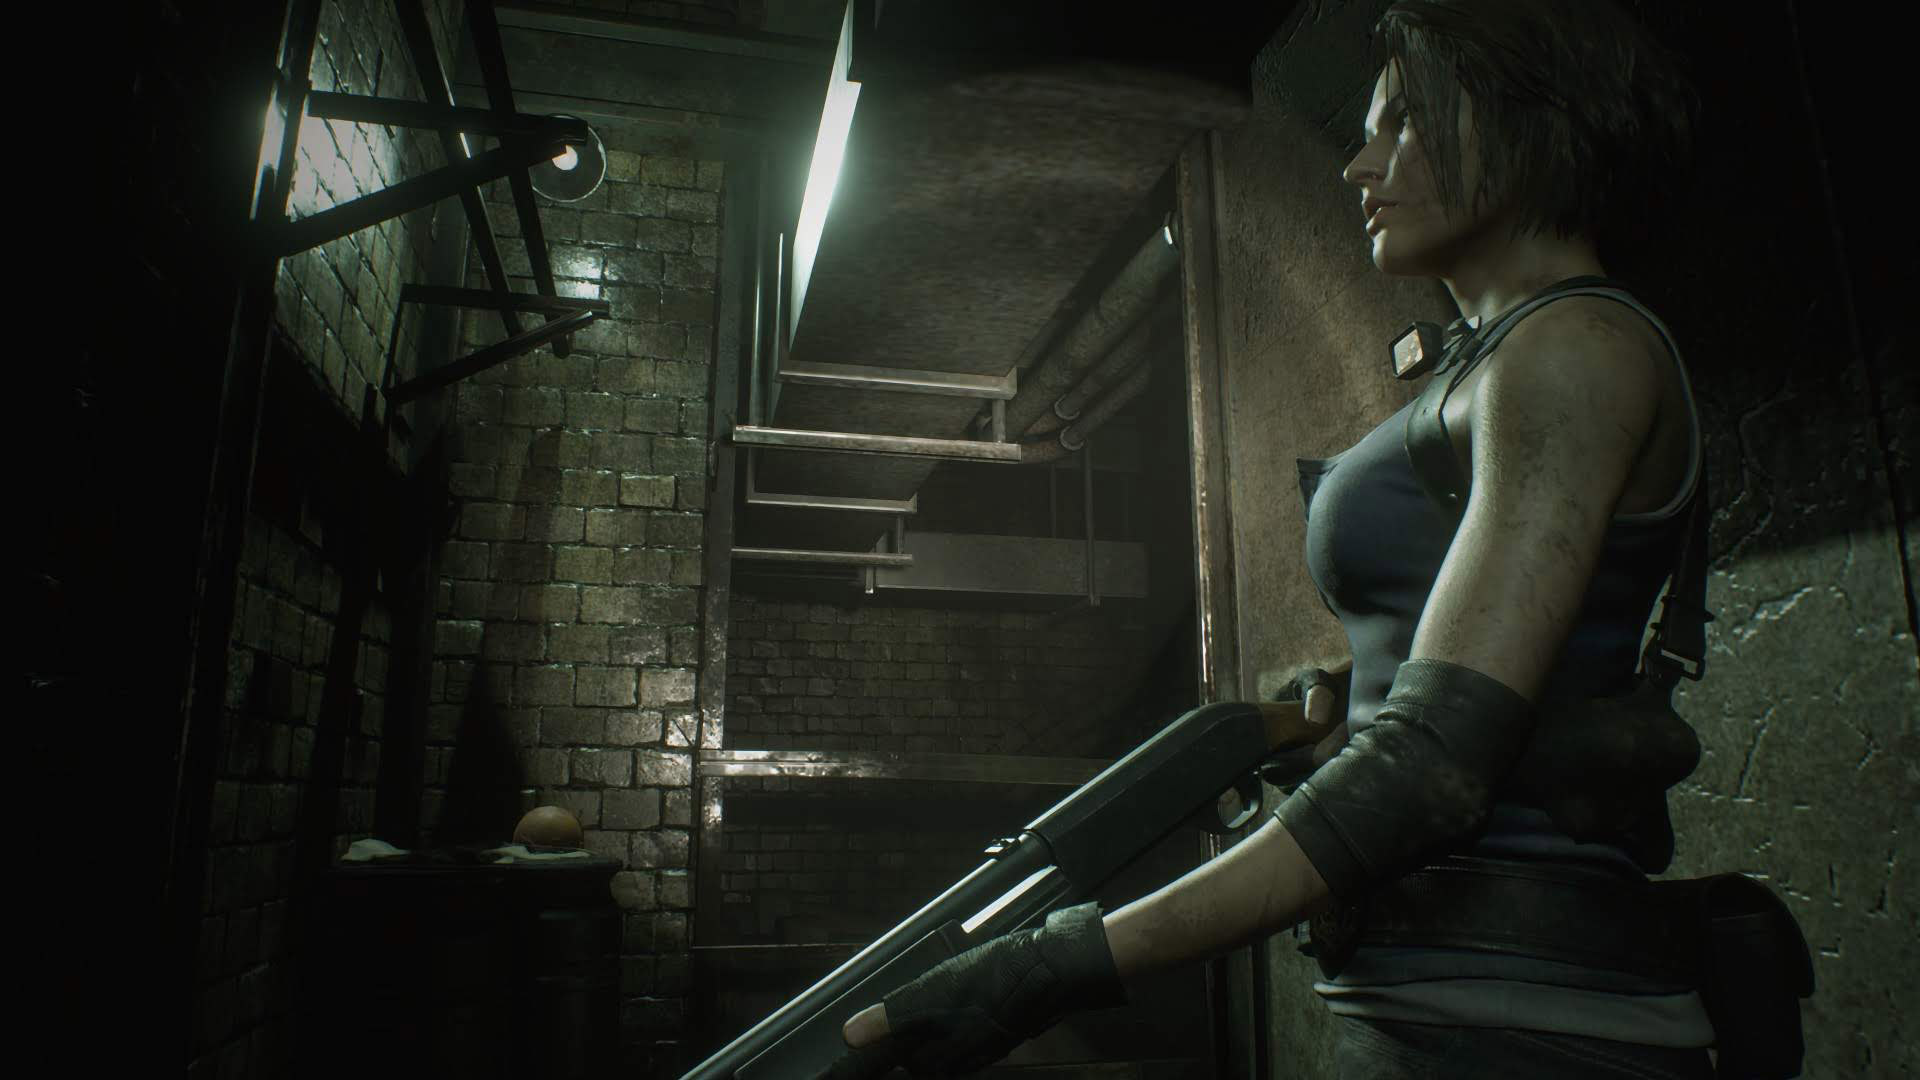 Free Resident Evil 3 Wallpaper in 1920x1080